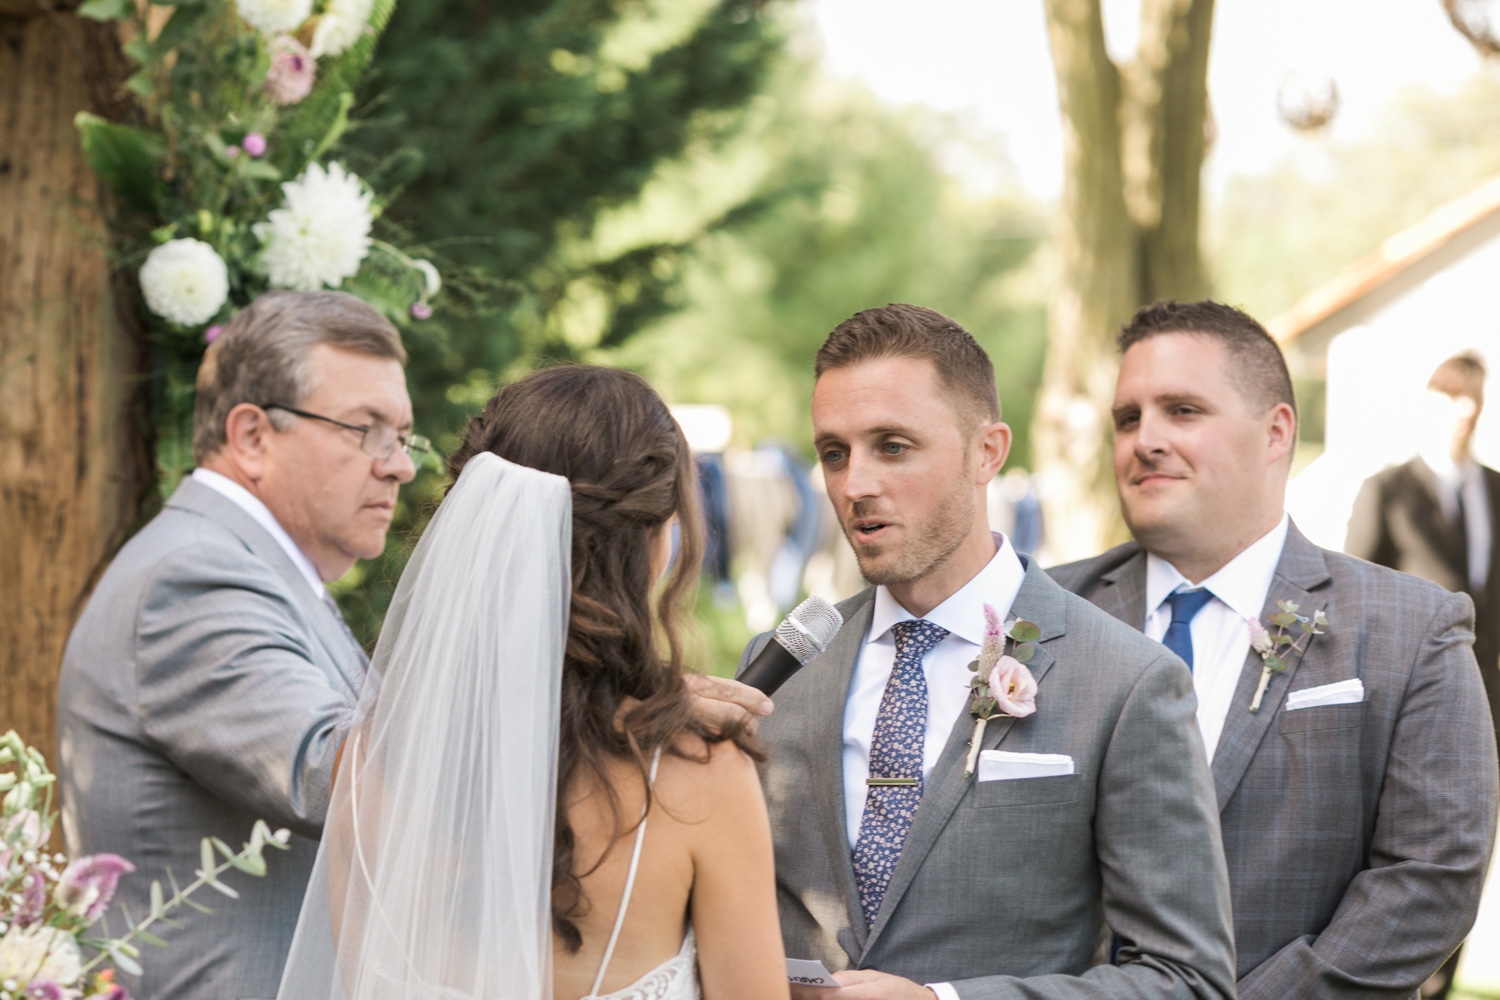 image of groom exchanging vows at private residence wedding ceremony